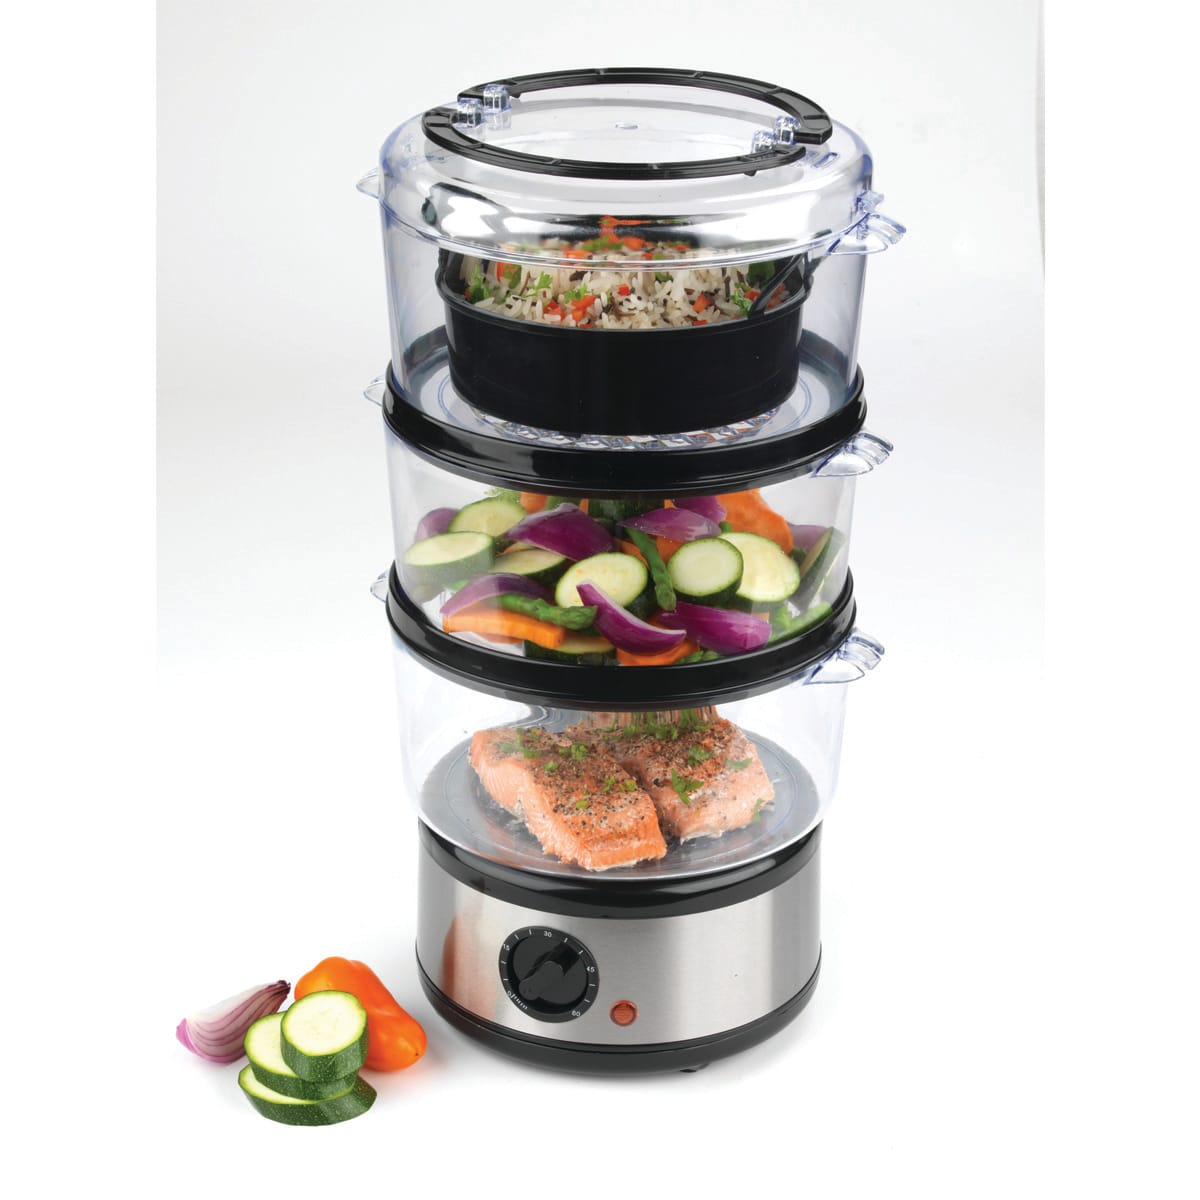 Salter 3 Tier Steamer, each bowl is removable so you can cook using one, two or three tiers, measures 20l x 23w x 41h cm, large water reservoir, a 60 minute timer